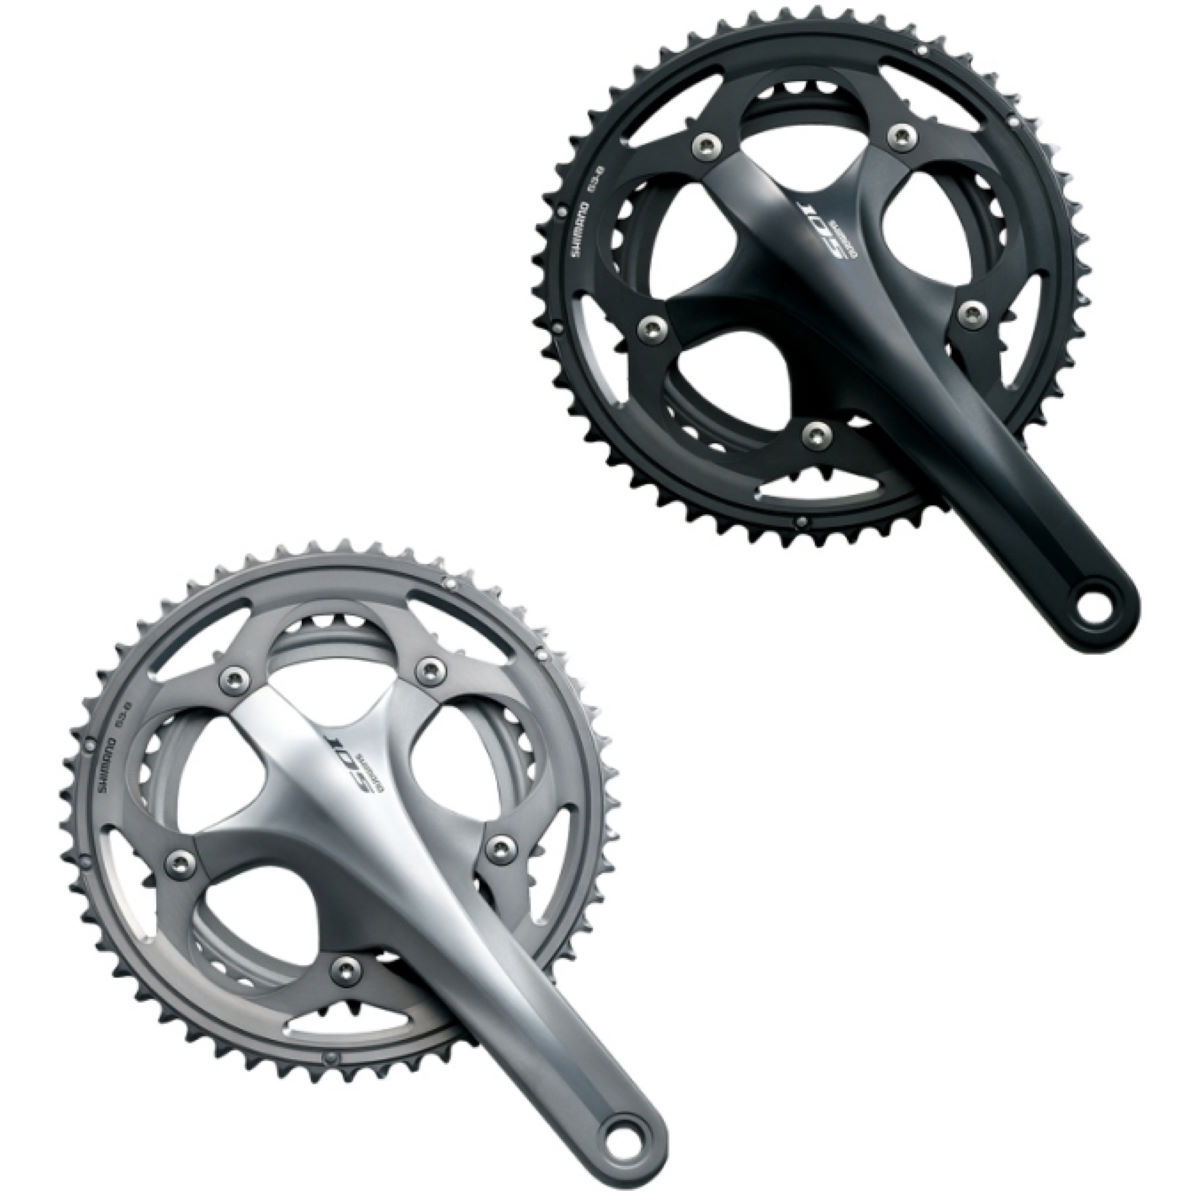 Shimano 105 5700 Hollowtech II Double Chainset